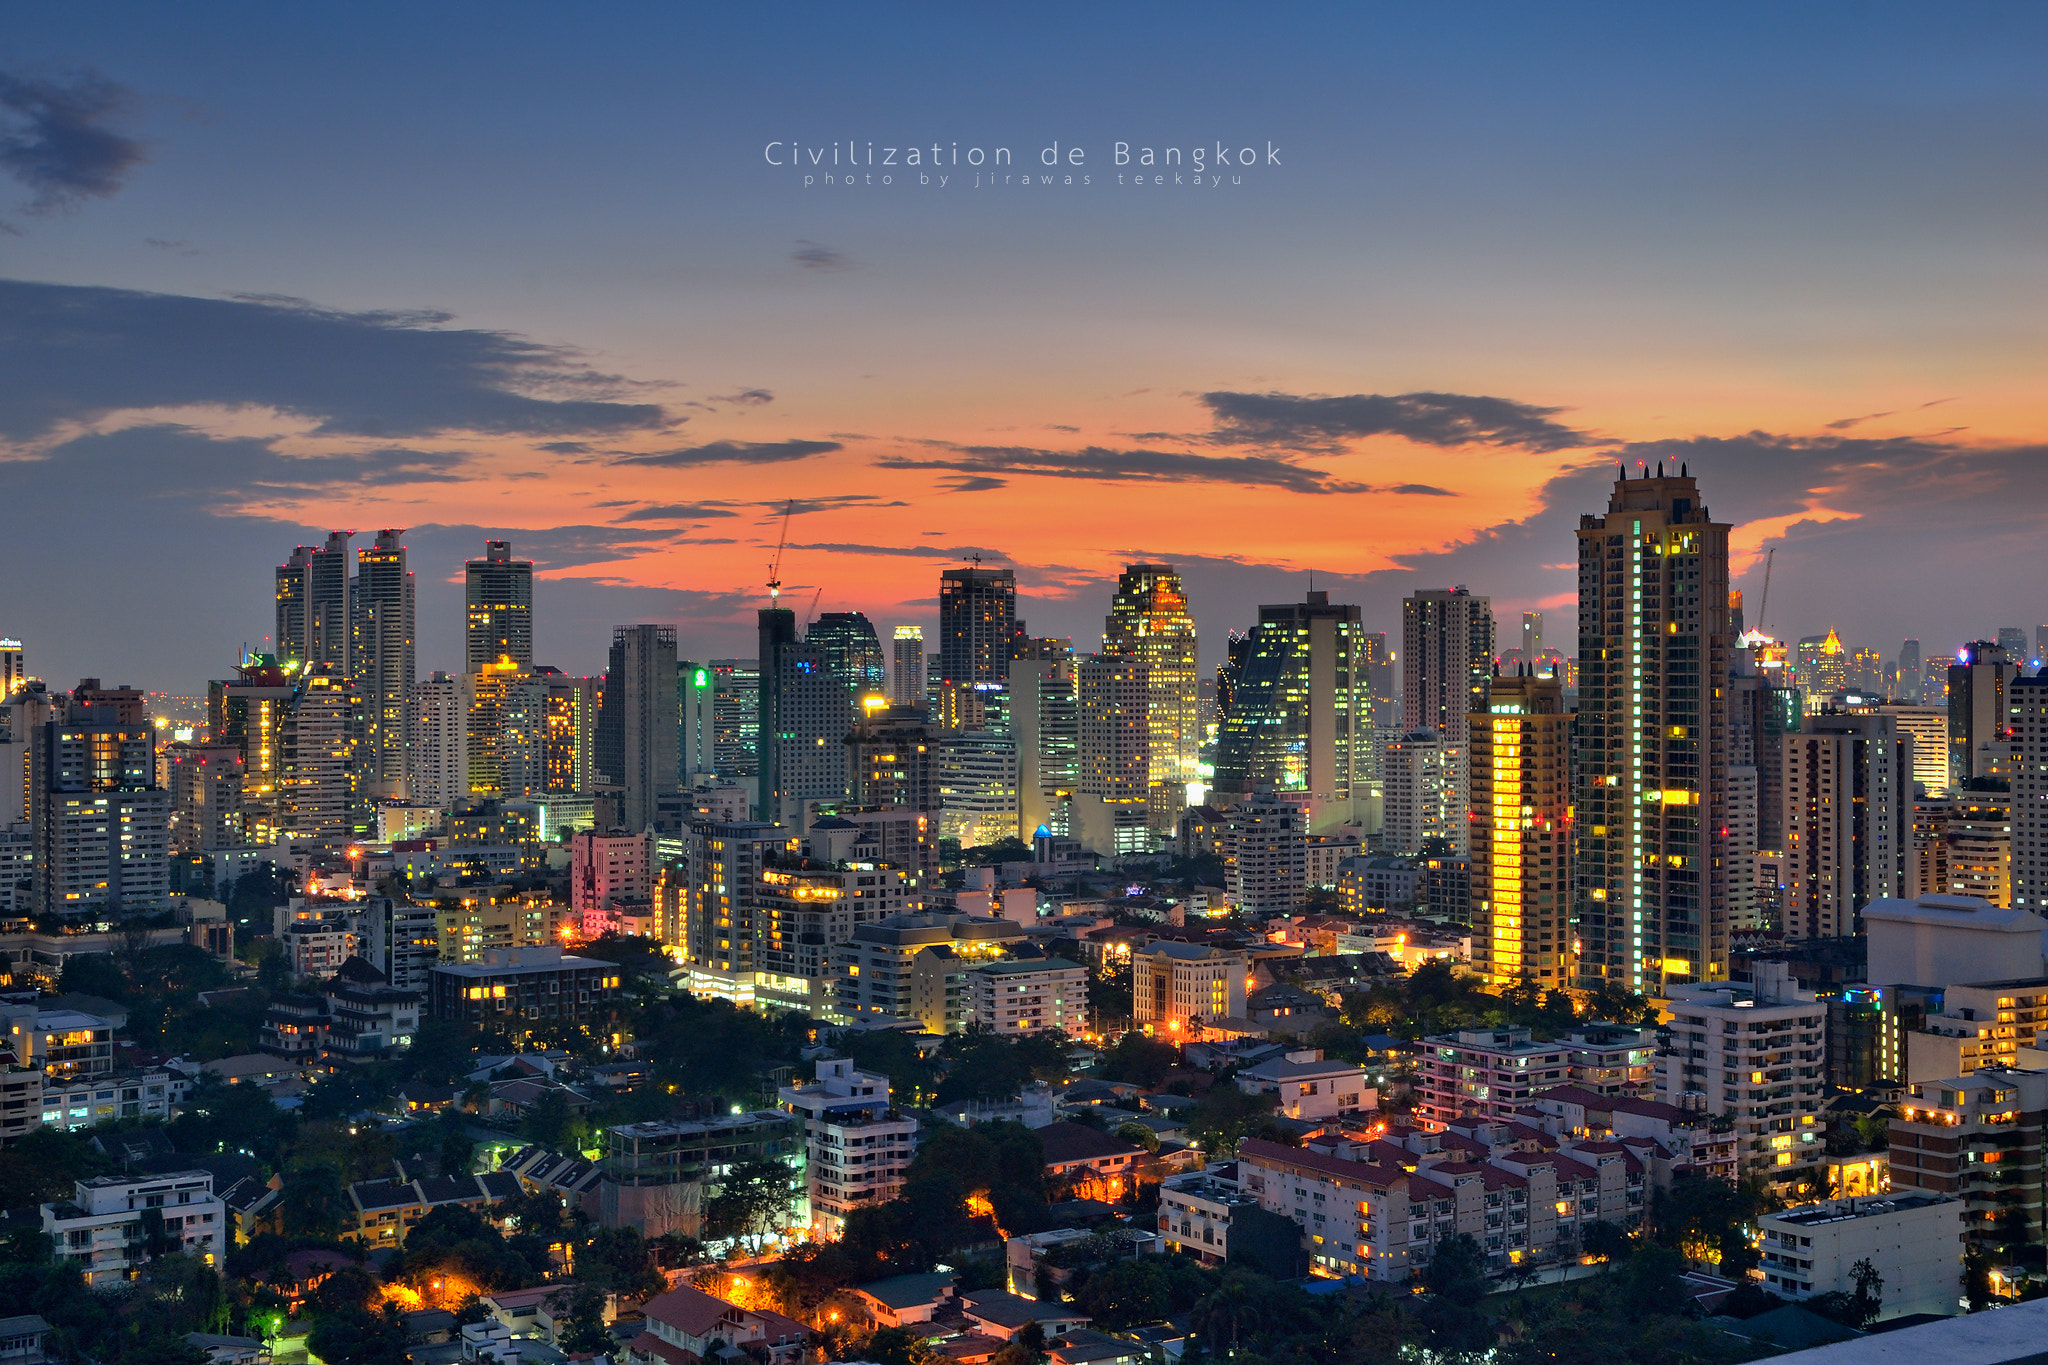 Photograph Civilization de Bangkok by Jirawas Teekayu on 500px